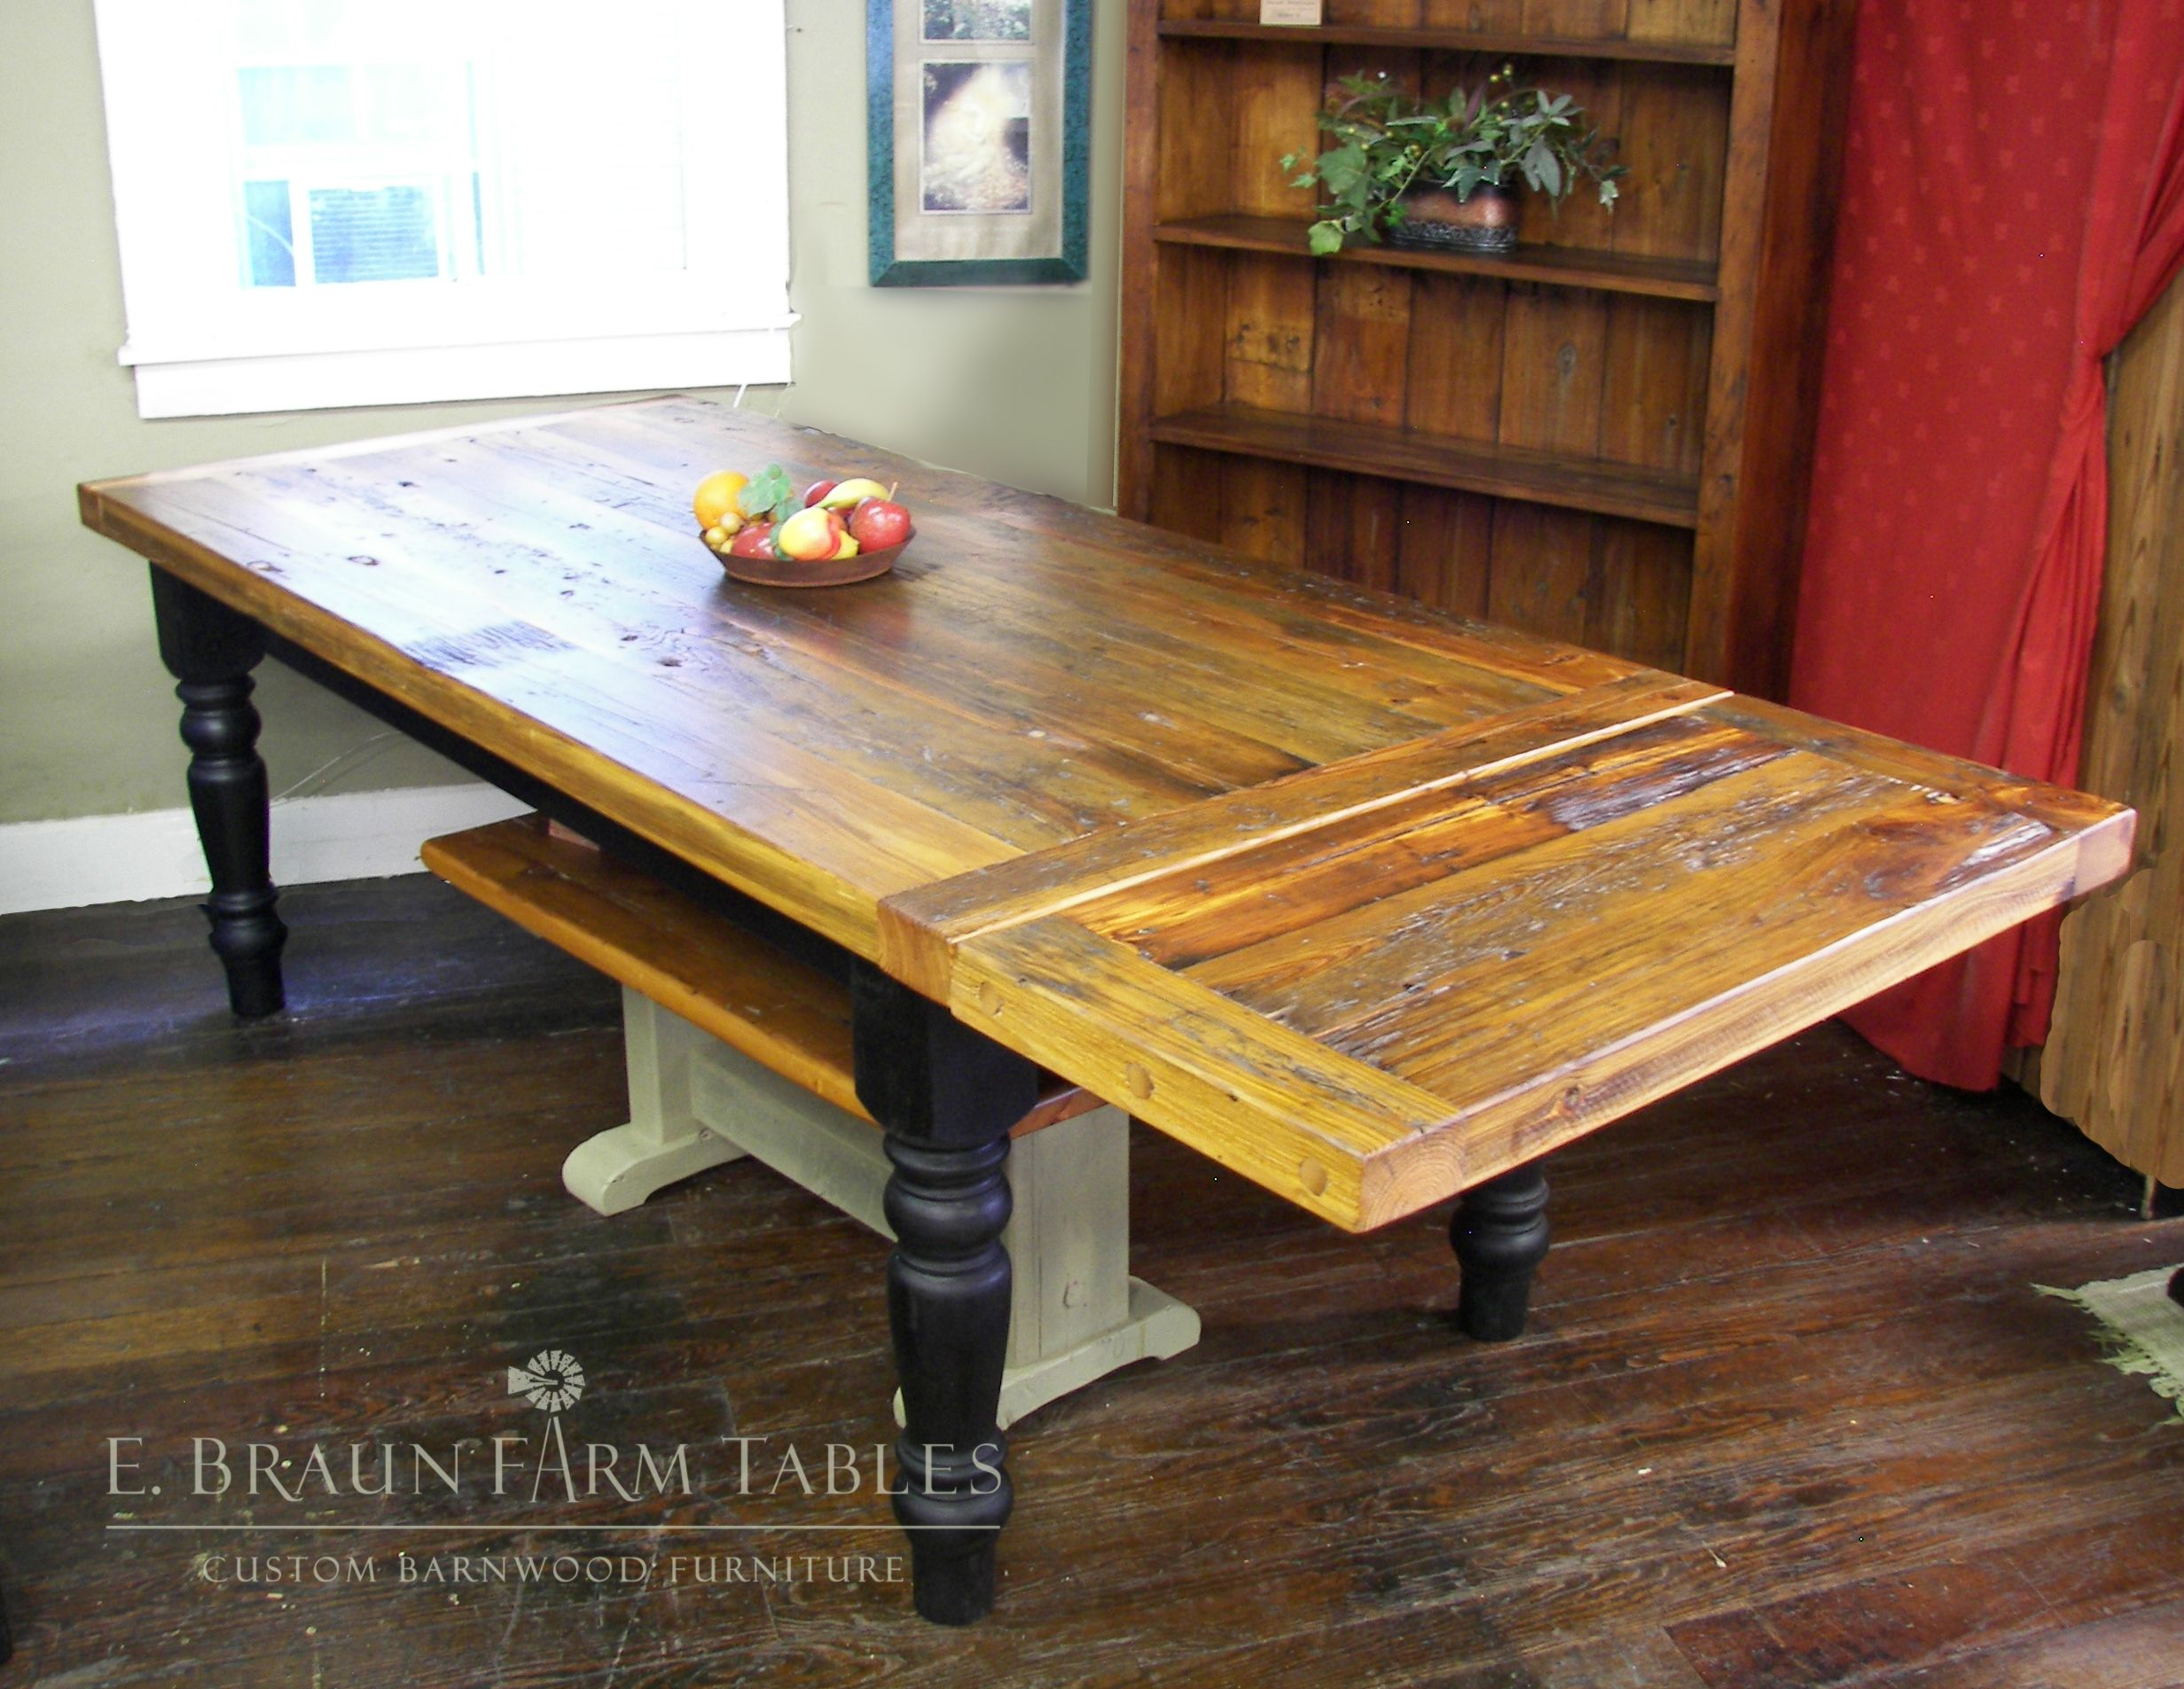 Reclaimed Yellow Pine Farm Table With Company Board Extension  E. Braun  Farm Tables And Furniture   We Custom Make Furniture For All Rooms Of The  Home Using ...